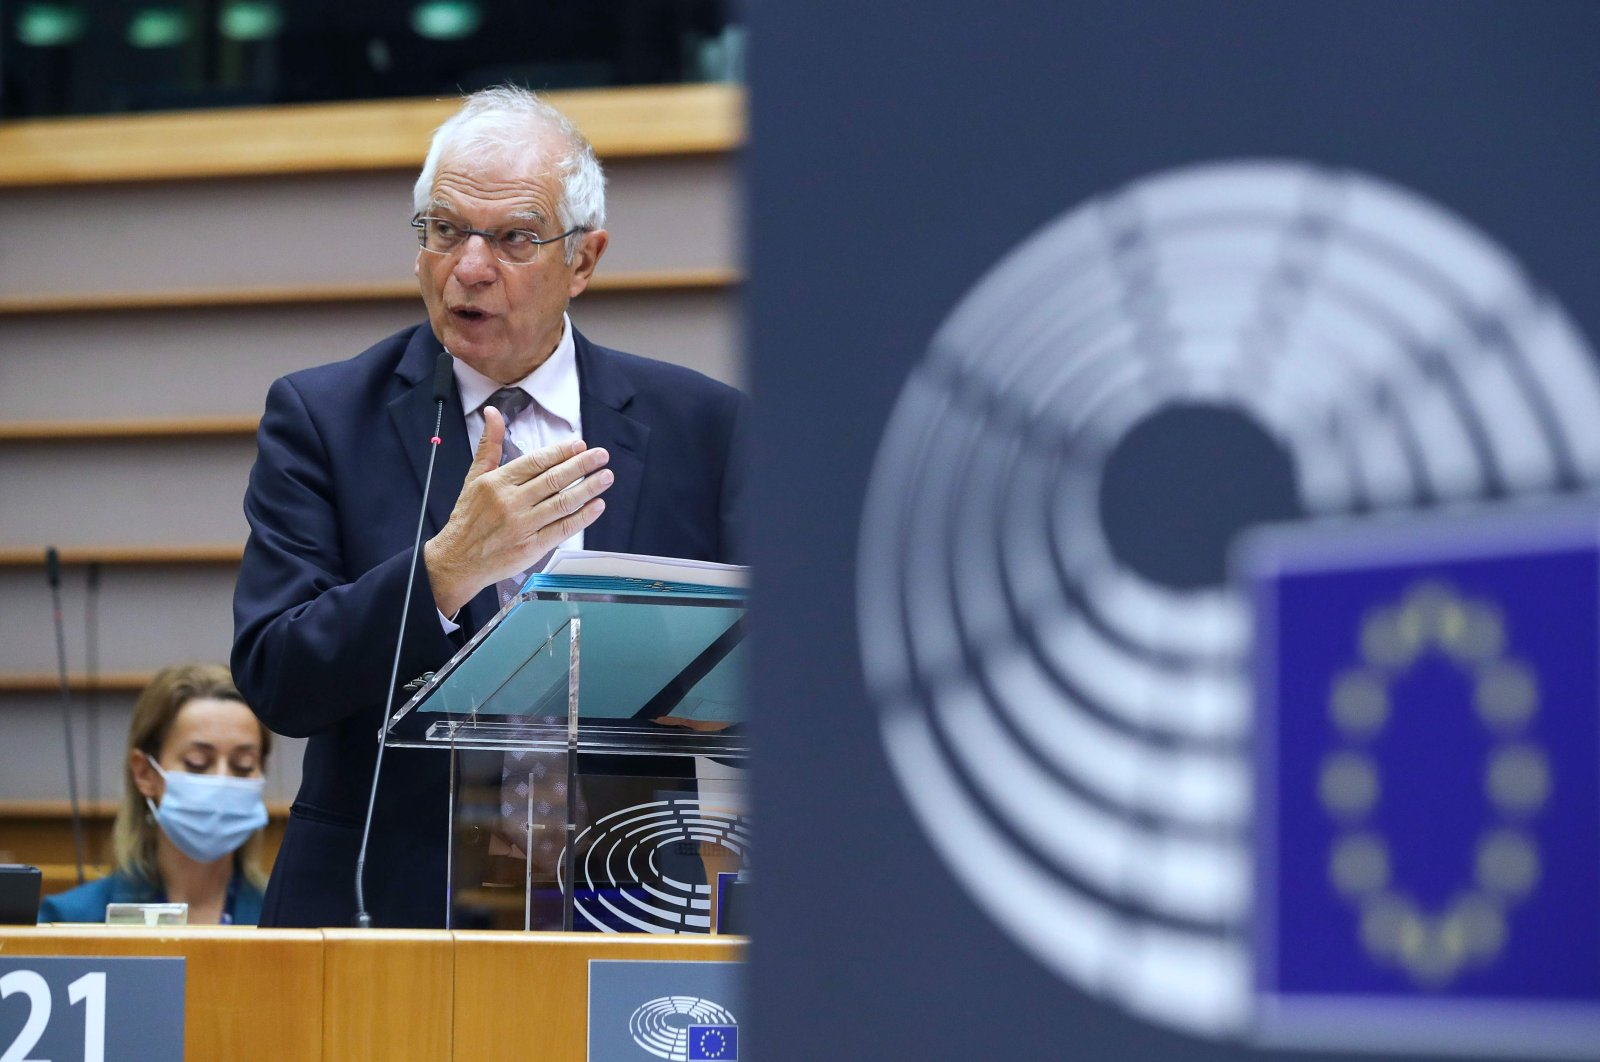 High Representative of the Union for Foreign Affairs and Security Policy Josep Borrell speaks on relations with the U.S. during a plenary session of the European Parliament in Brussels, Belgium, Nov. 11, 2020. (AFP Photo)